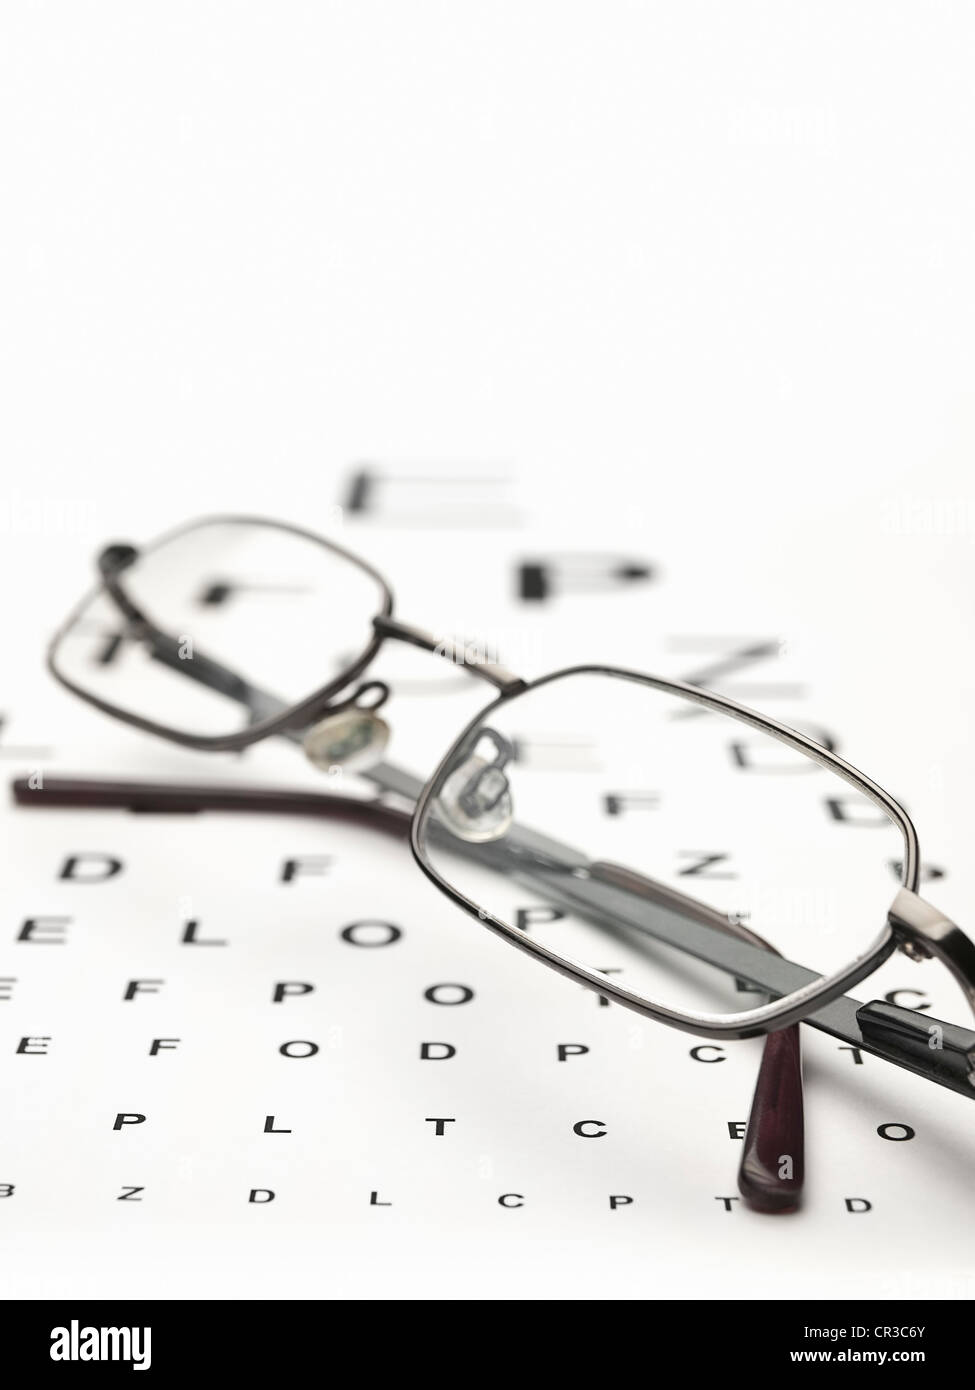 Glasses on the eye test chart forhealth caredistance vision test glasses on the eye test chart forhealth caredistance vision test themes geenschuldenfo Image collections